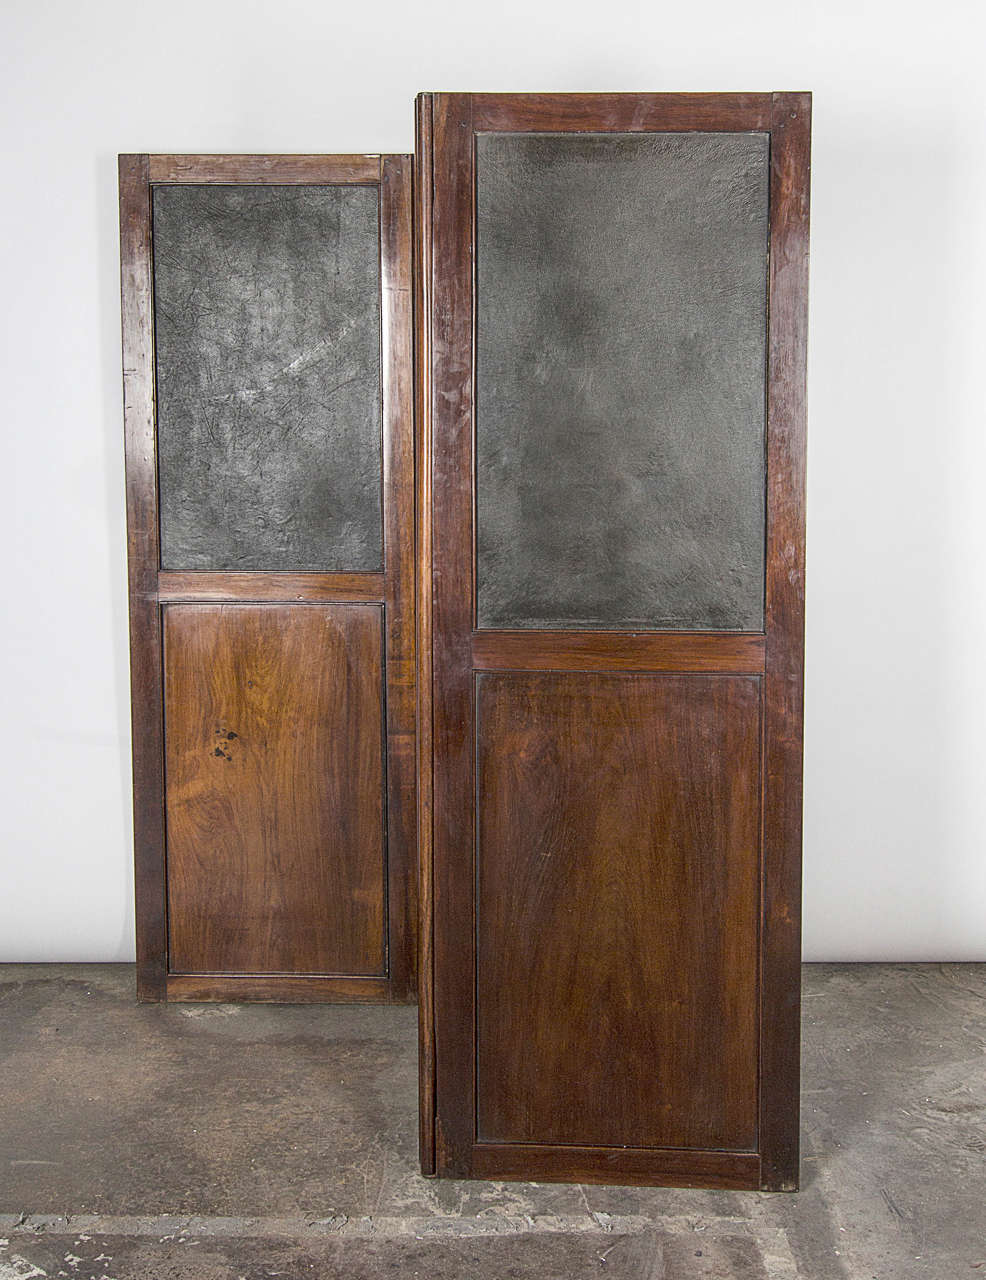 Wood and Leather Room Divider For Sale at 1stdibs